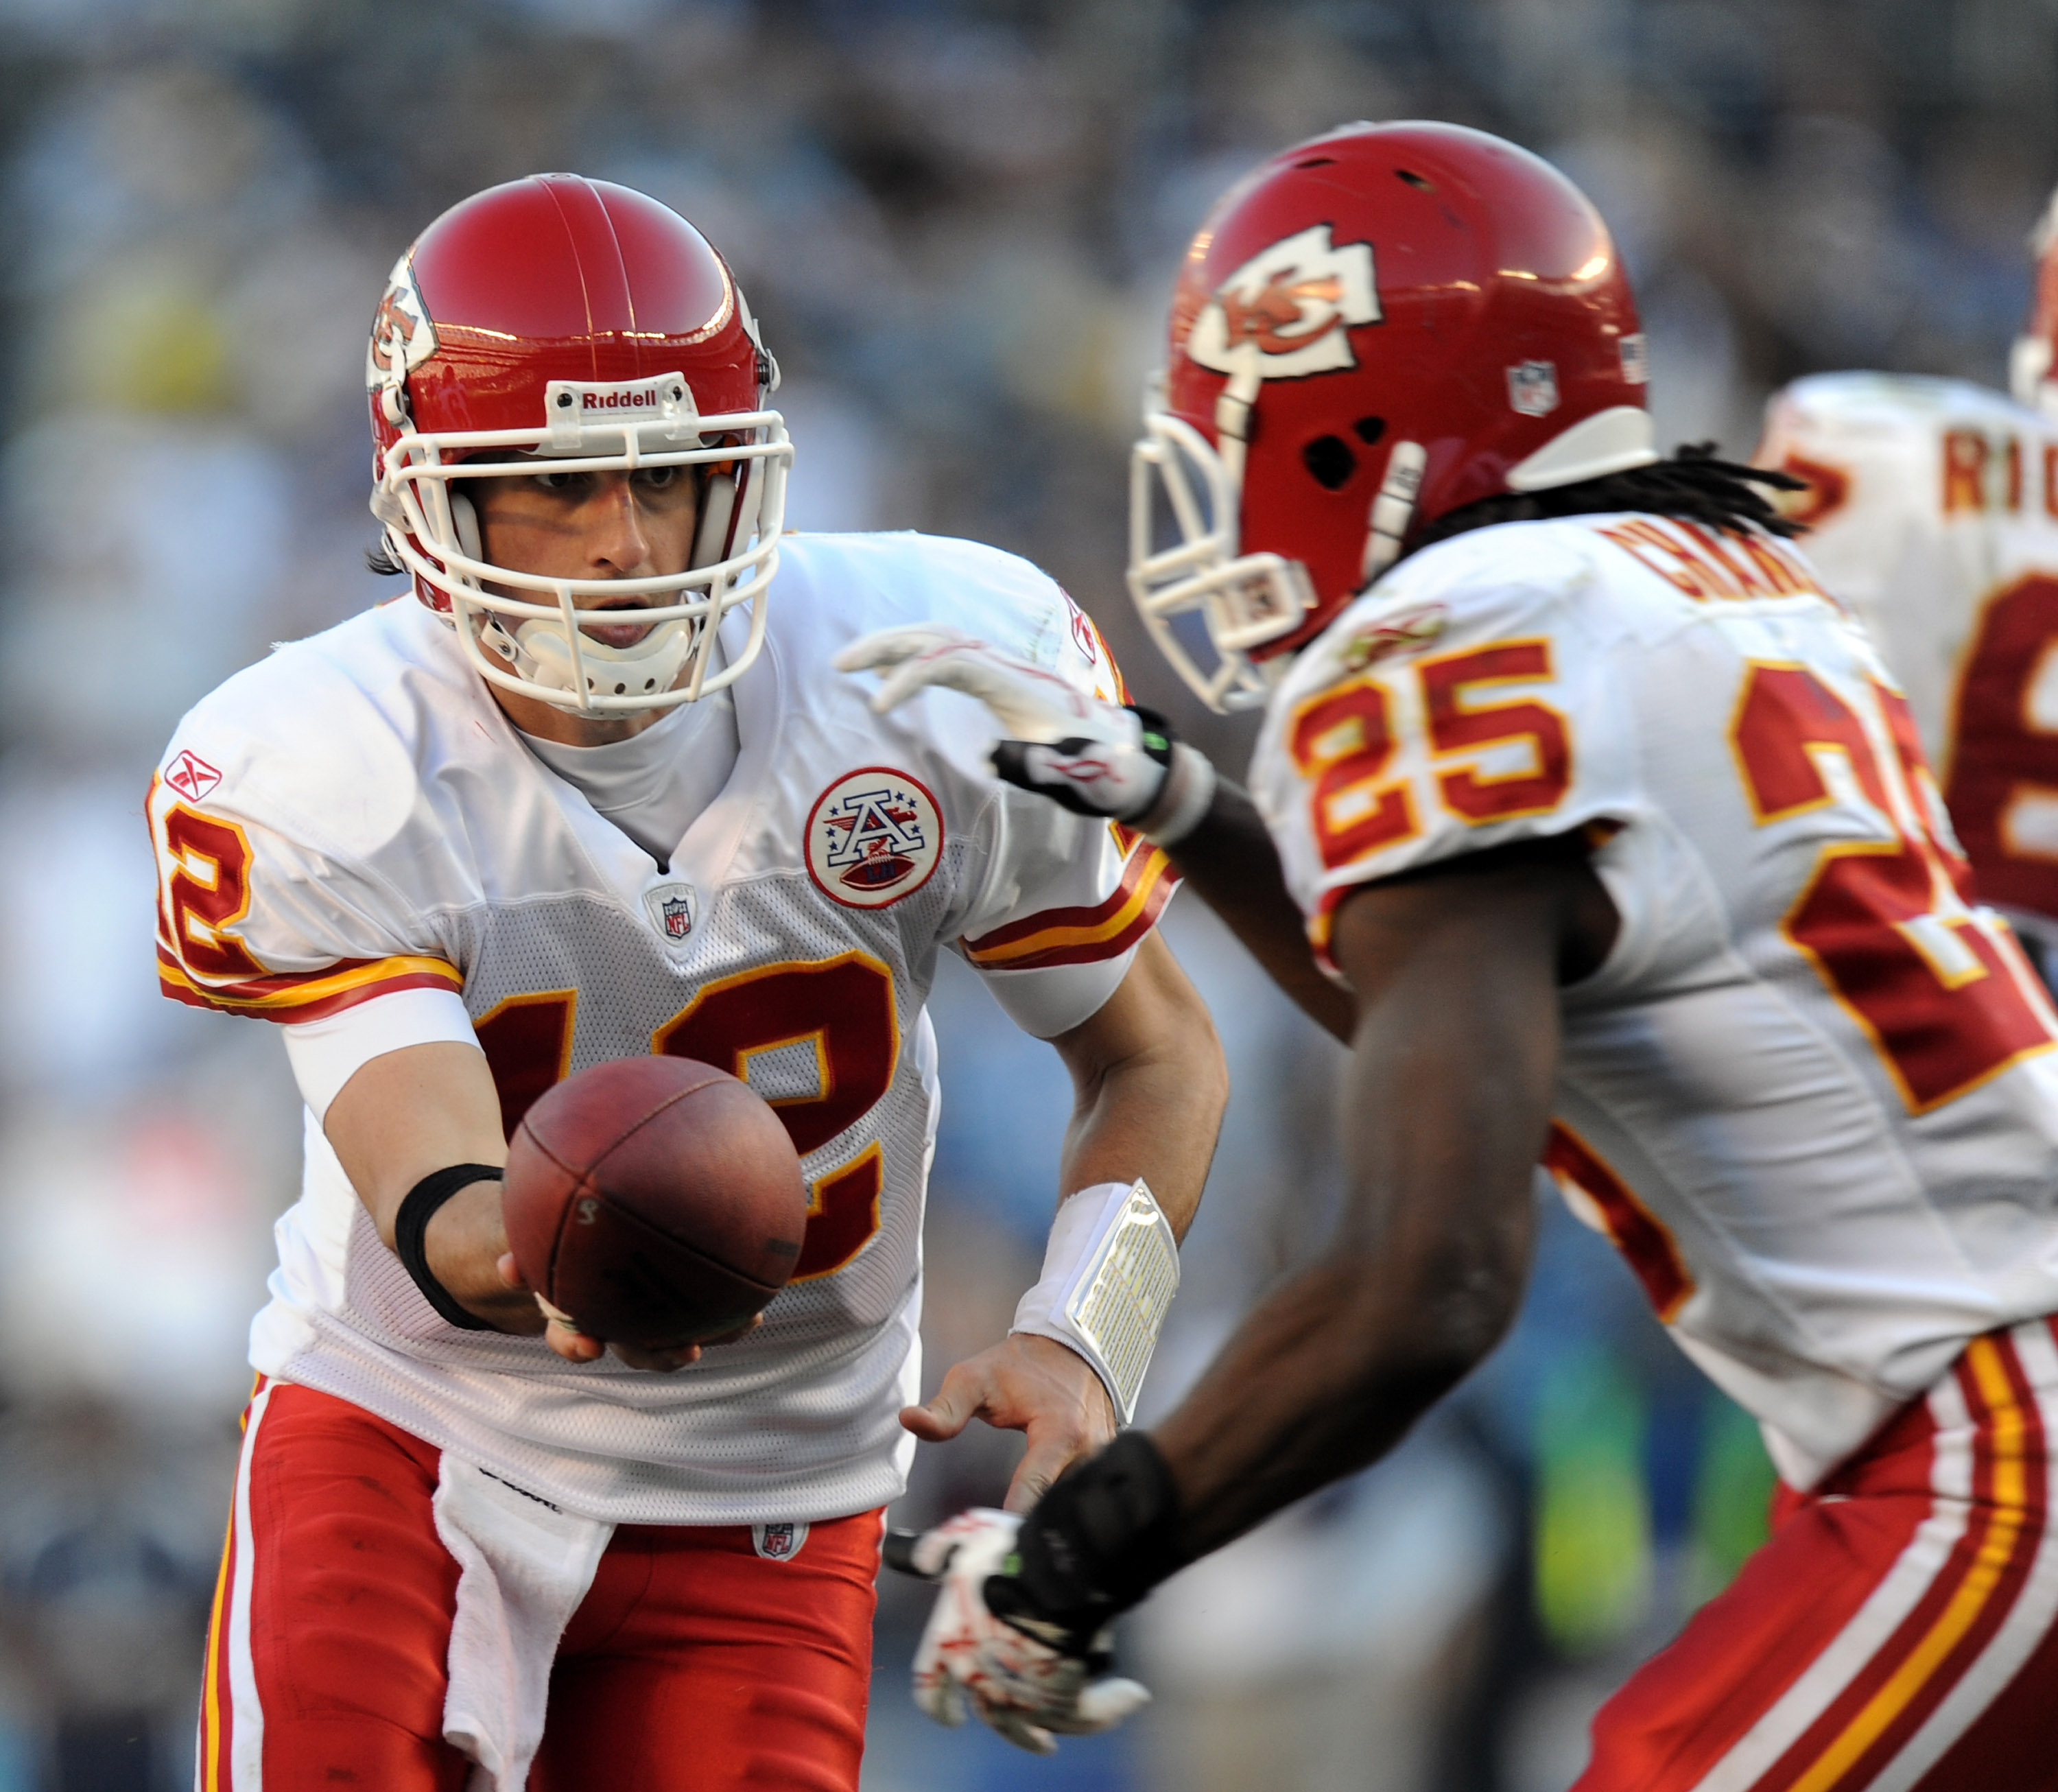 SAN DIEGO, CA - DECEMBER 12:  Brodie Croyle #12 of the Kansas City Chiefs handsoff to Jamaal Charles #25 against the San Diego Chargers at Qualcomm Stadium on December 12, 2010 in San Diego, California.  (Photo by Harry How/Getty Images)